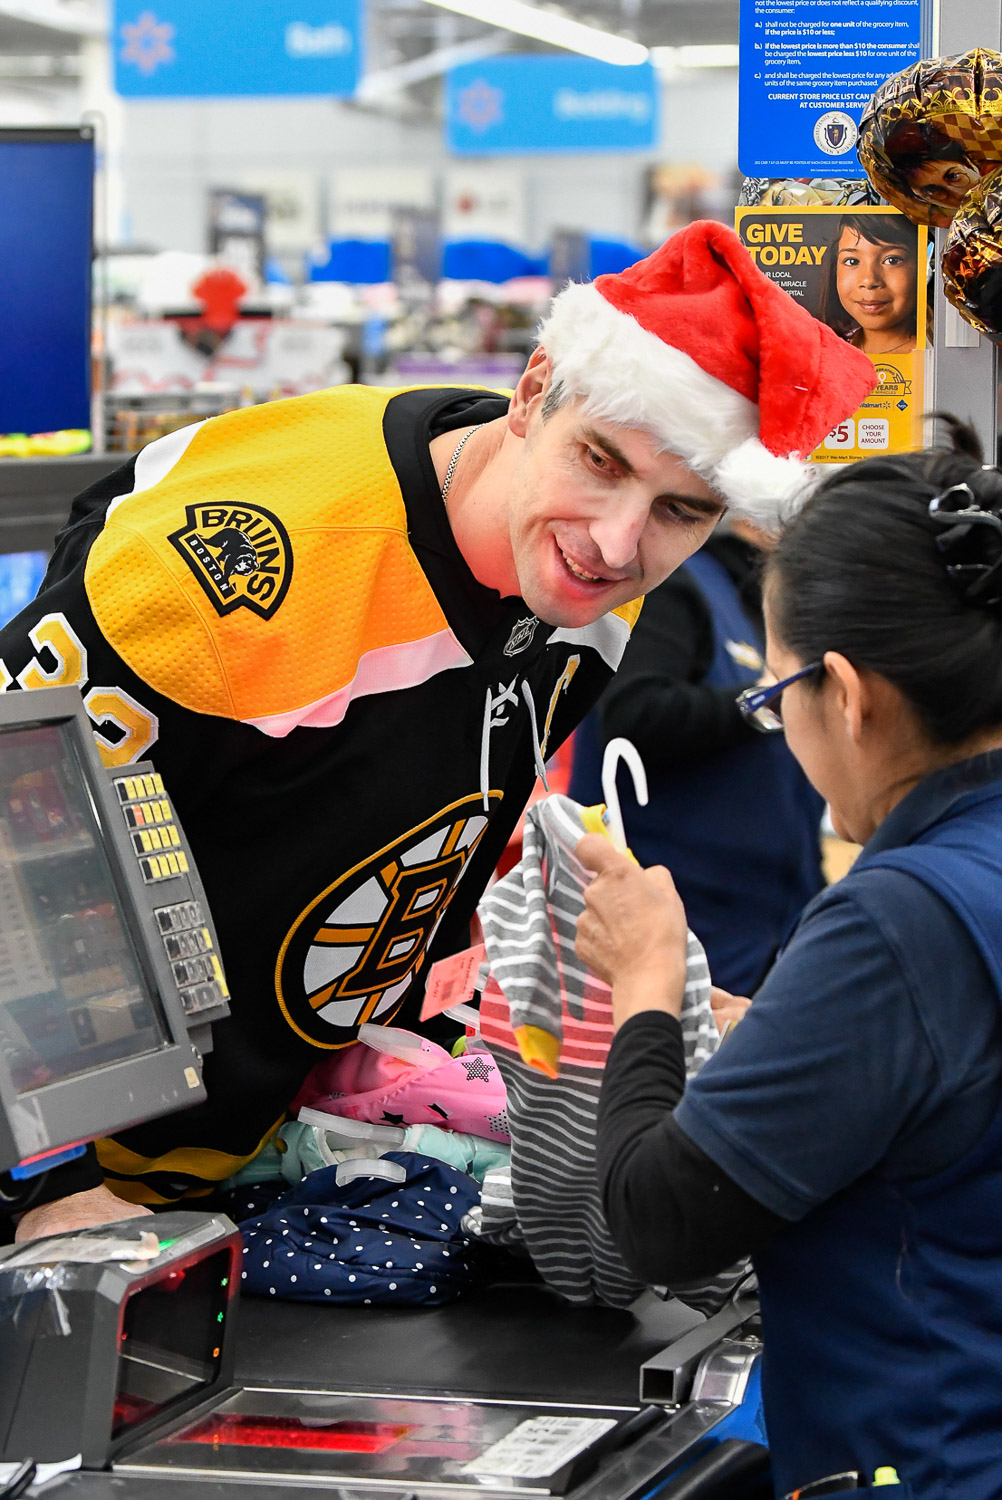 Nikon D500, 1/250 @ f/4, ISO 3200, 70-200mm  Zdeno Chara, Boston Bruins defenseman, peaks at the cashiers register screen as he checks out after shopping at Walmart in Saugus during the Bruins Annual Holiday Toy Shopping event where gifts purchased by members of the Boston Bruins will be donated to area hospitals around Boston for children who are unable to celebrate the holidays at home, Thursday, Nov. 30, 2017. [Wicked Local Staff Photo / David Sokol]